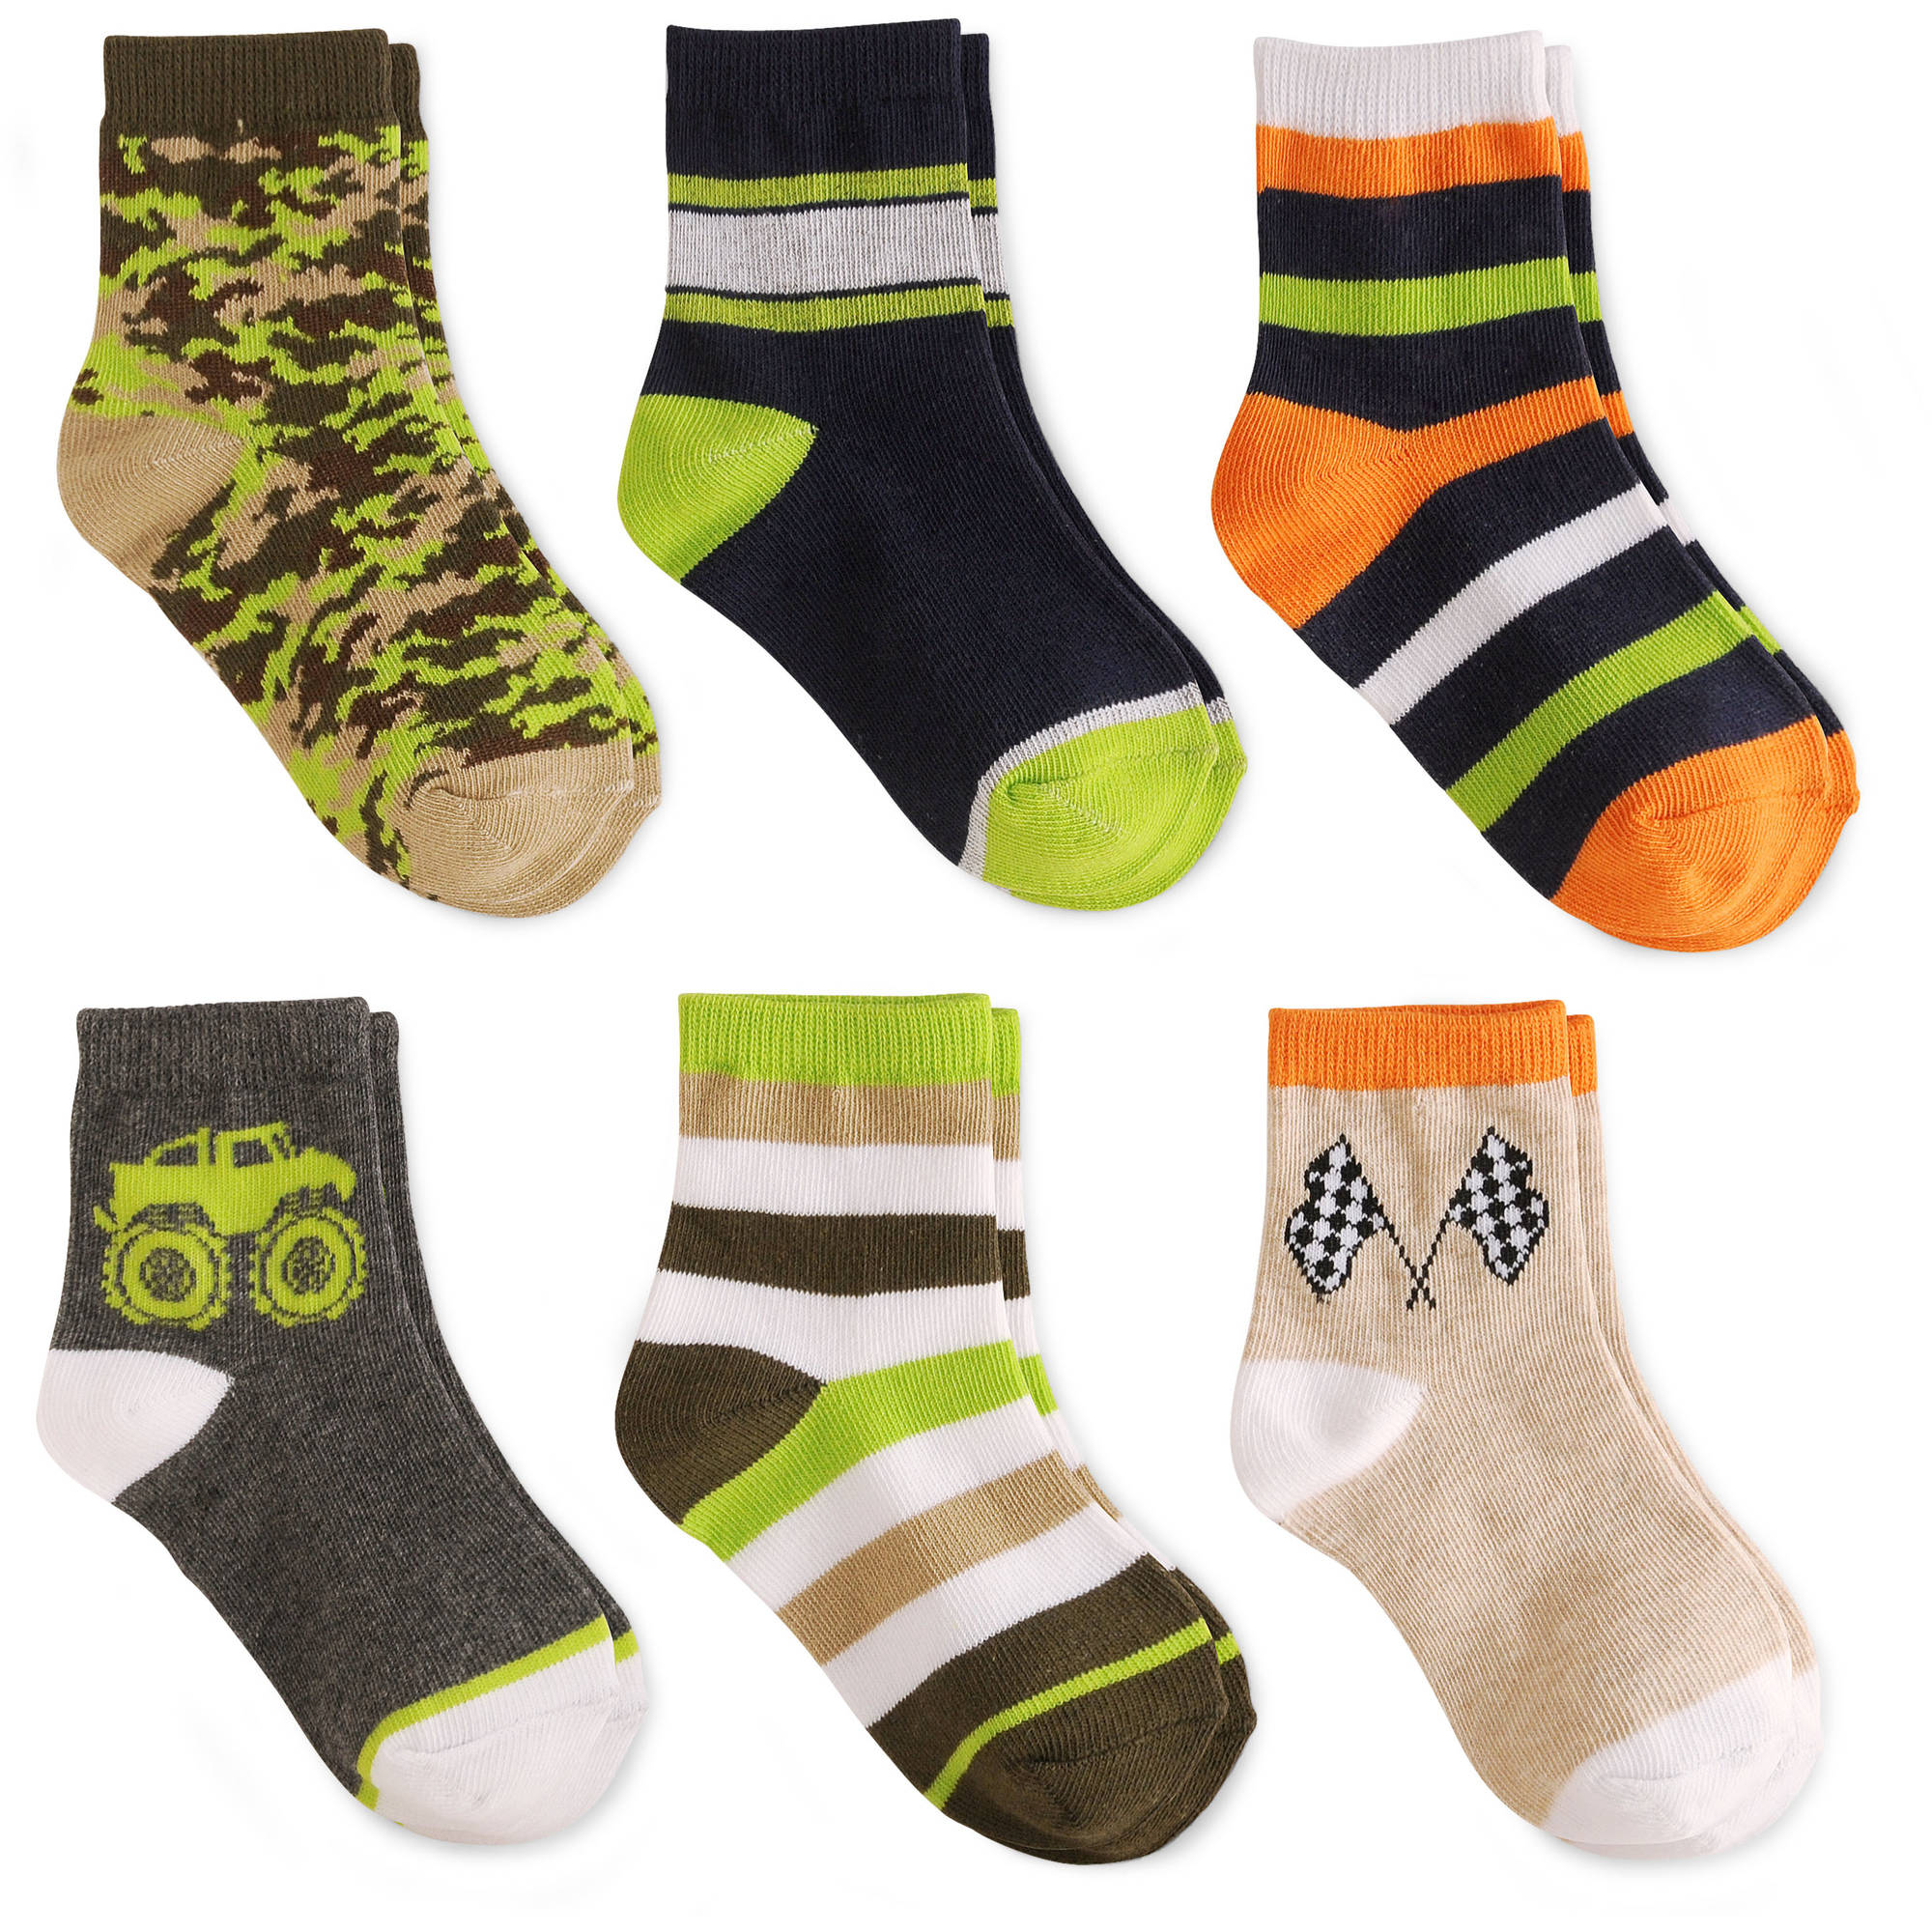 Garanimals Baby Toddler Boy Socks,6-Pack